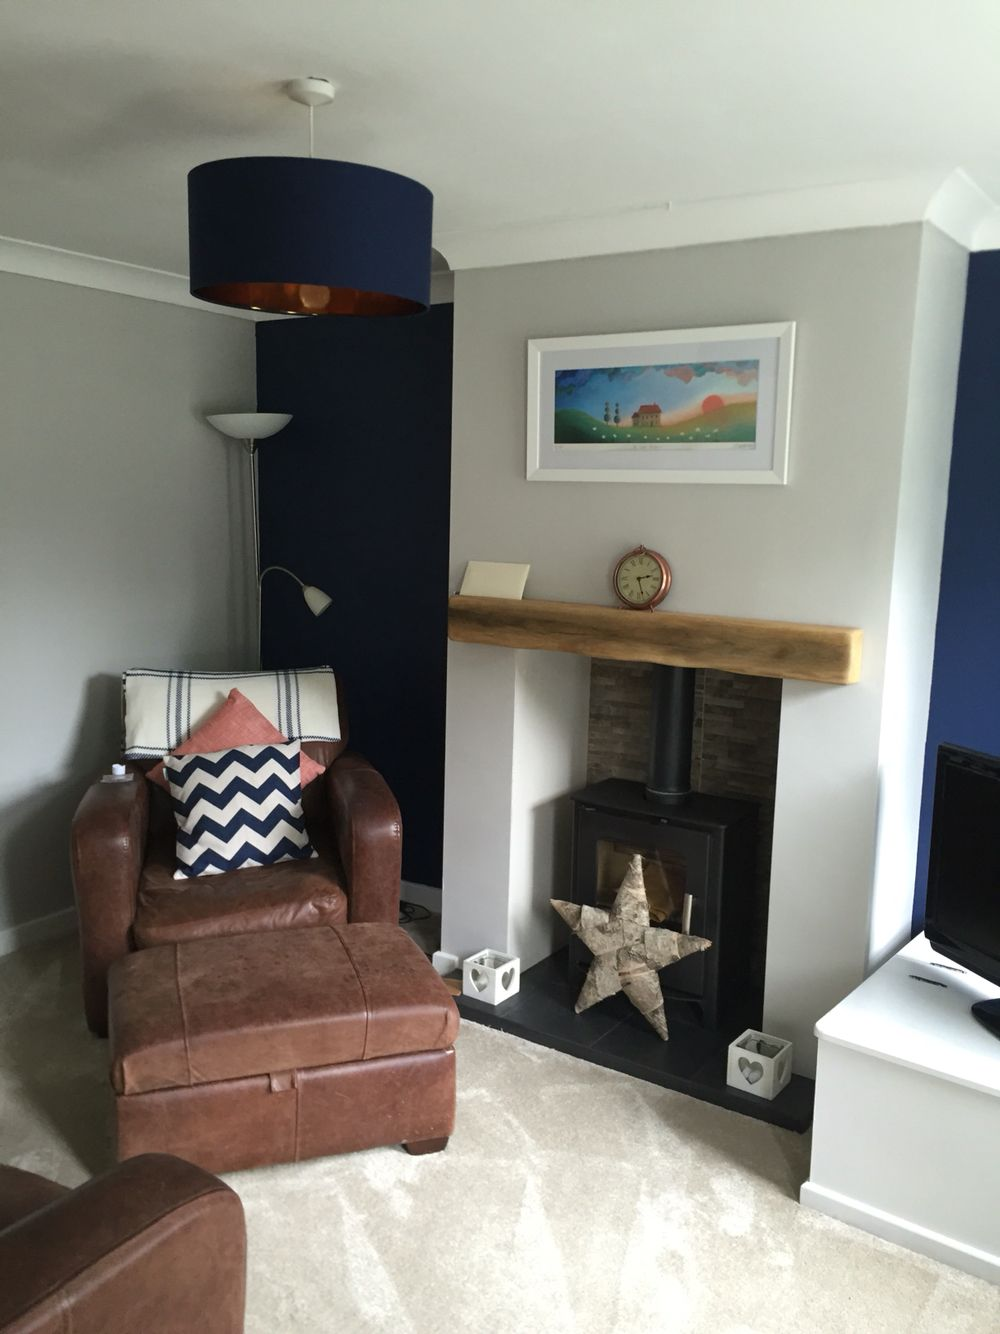 Dulux Living Room Ideas Part - 43: Dulux Sapphire Salute And Fu0026B Cornforth White Living Room. With Lucy  Pittaway Print